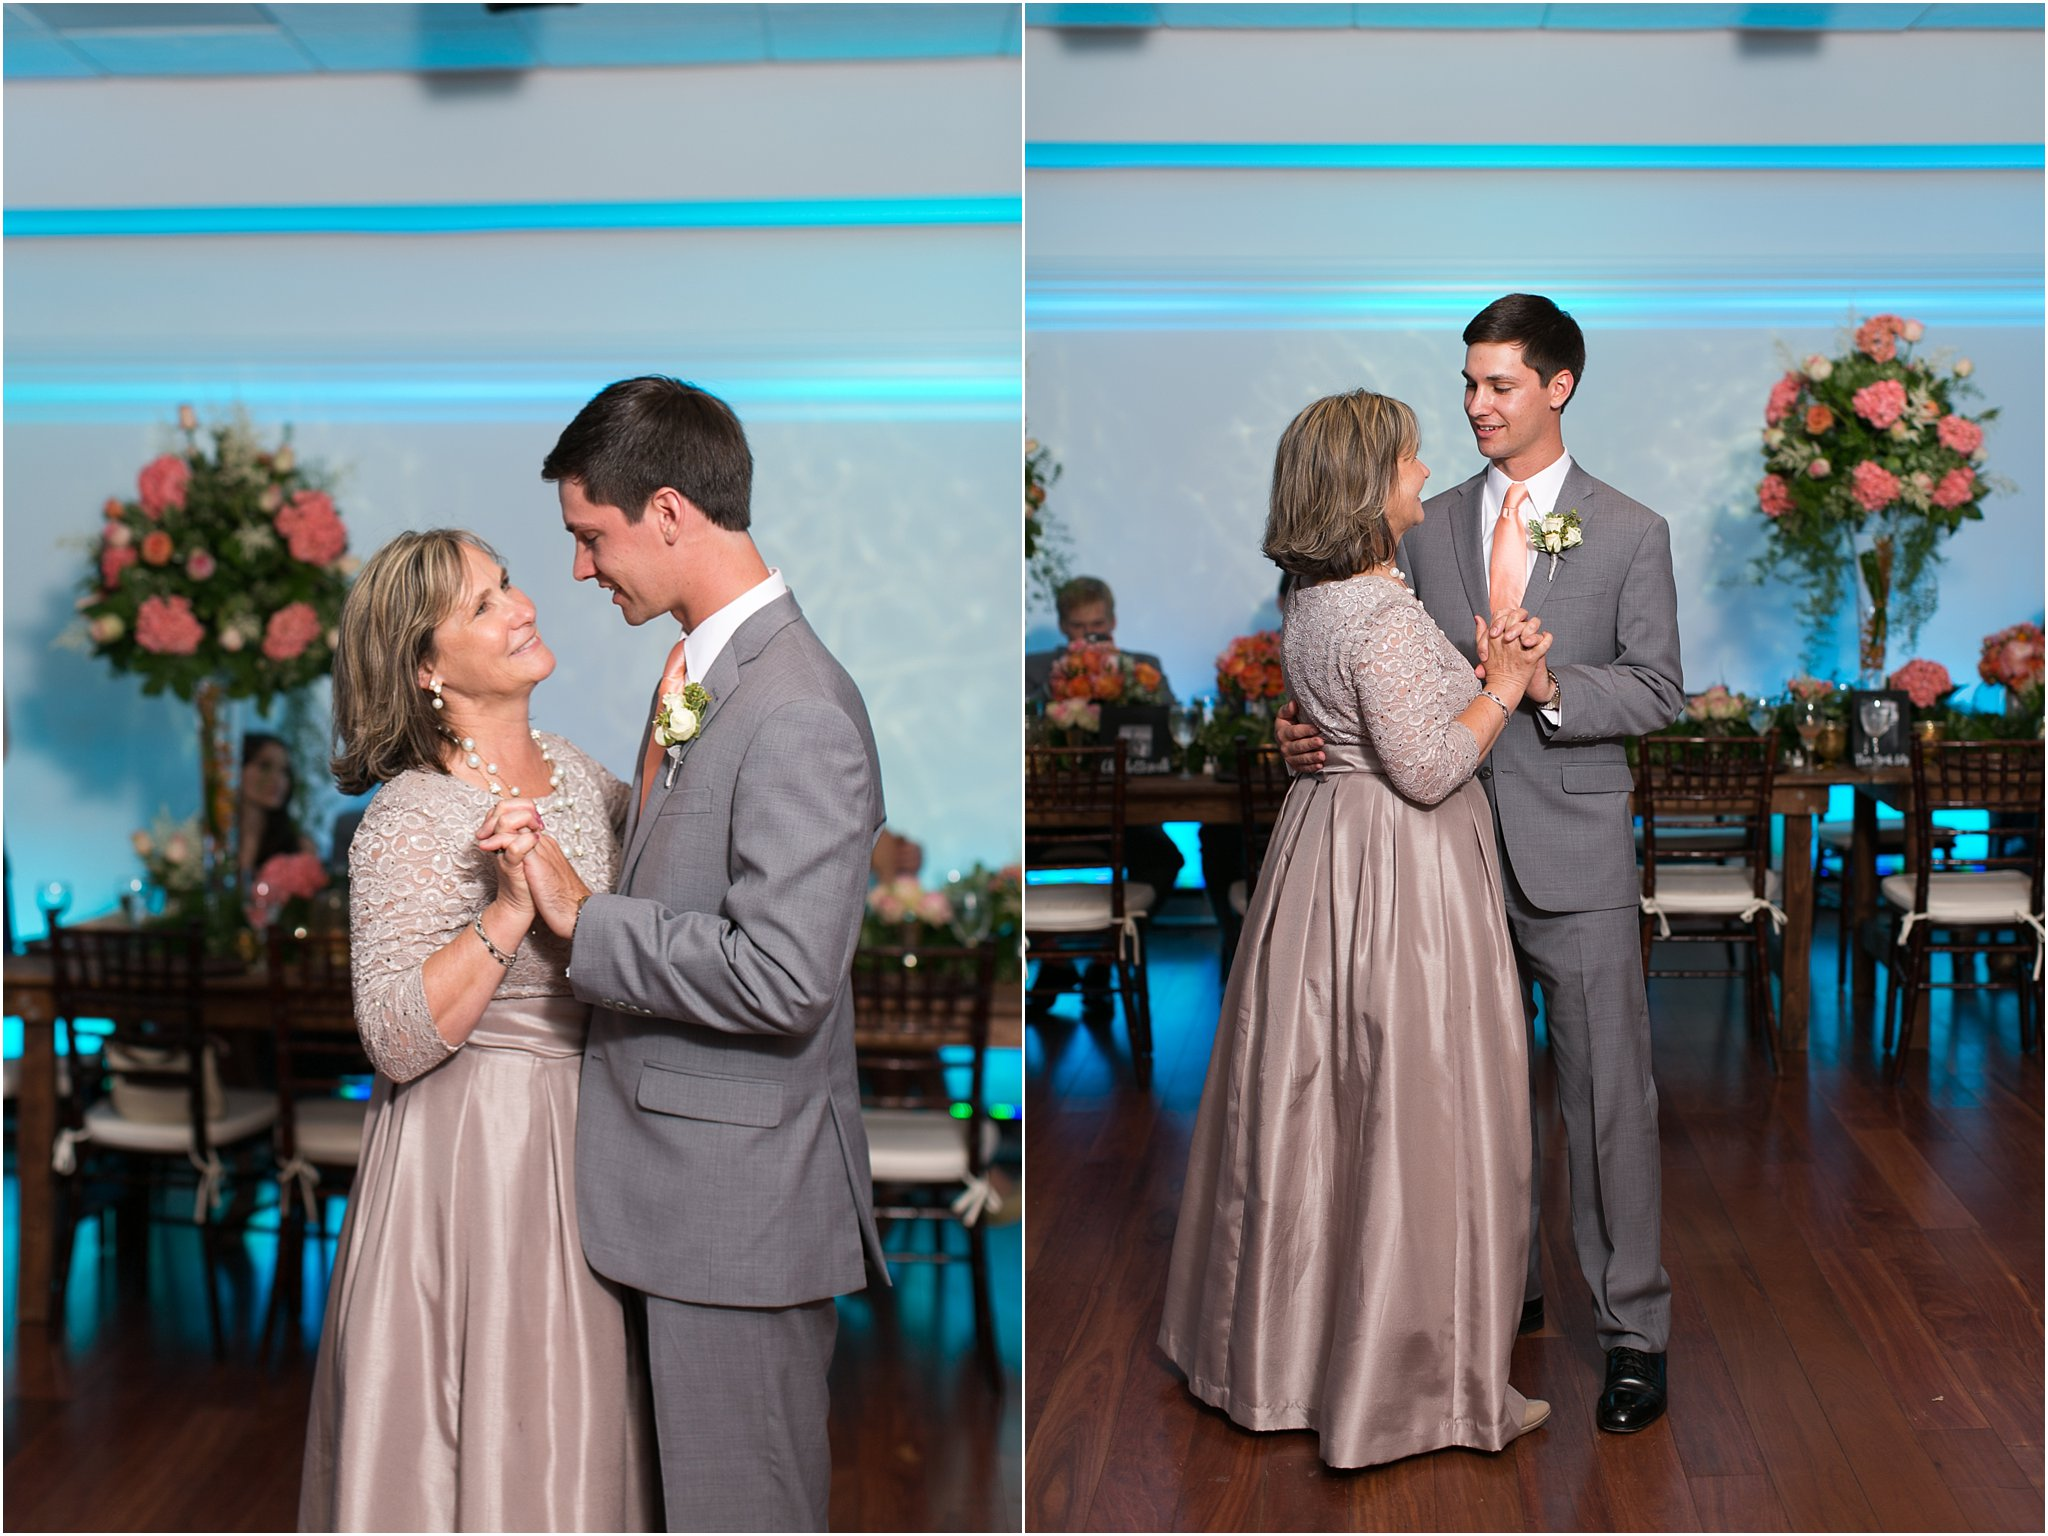 jessica_ryan_photography_wedding_photography_virginiabeach_virginia_candid_authentic_wedding_portraits_marina_shores_yacht_club_chesapeake_bay_1946